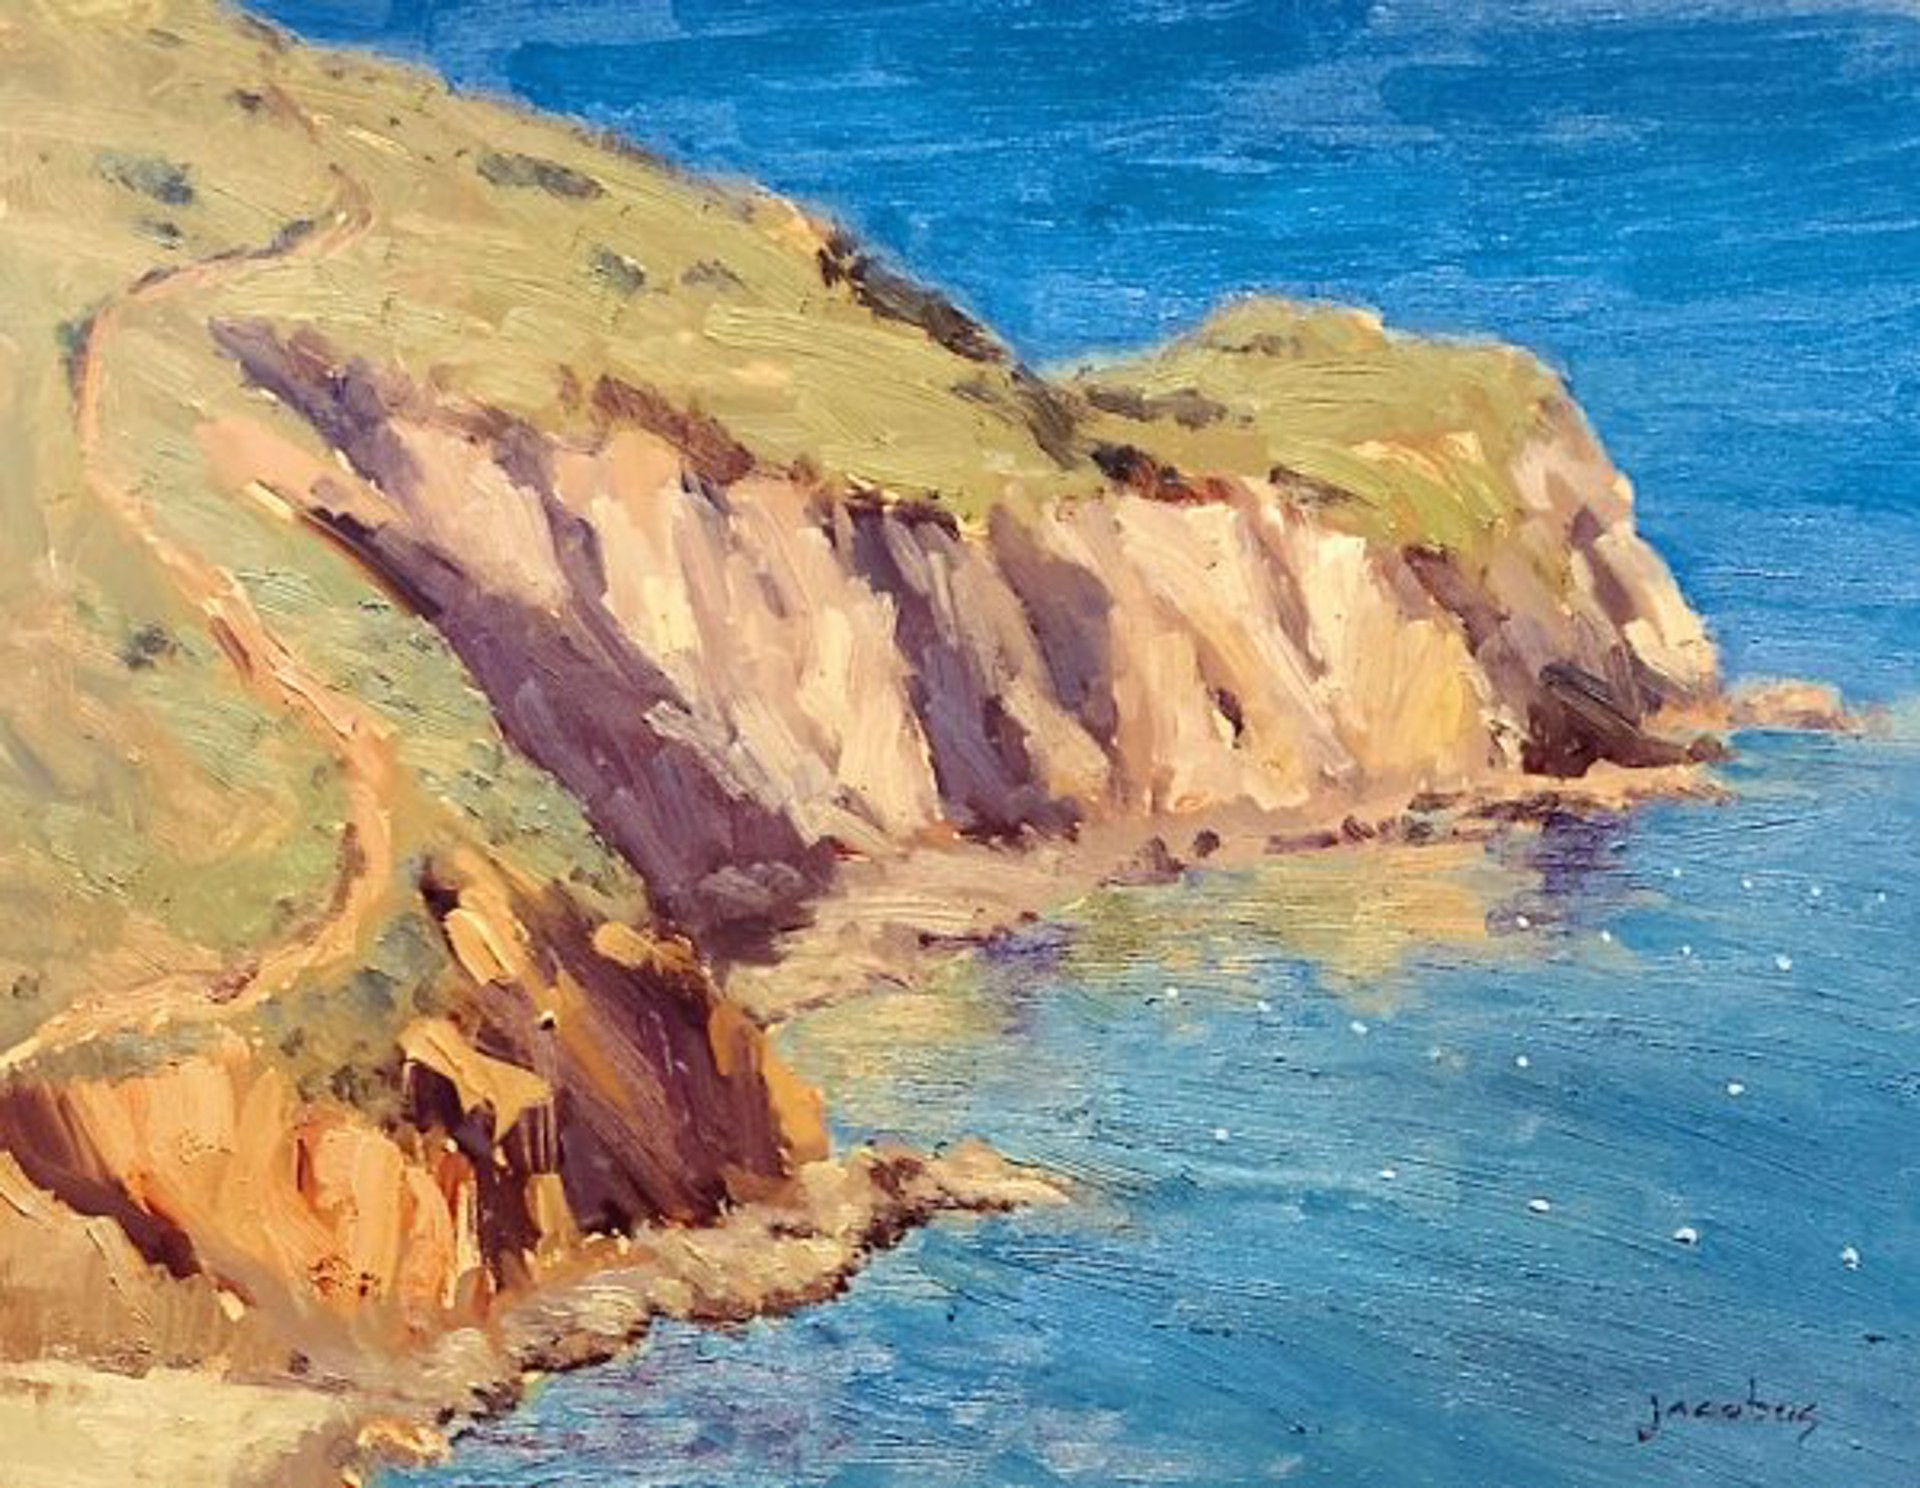 Cherry Cove, Catalina by Jacobus Baas